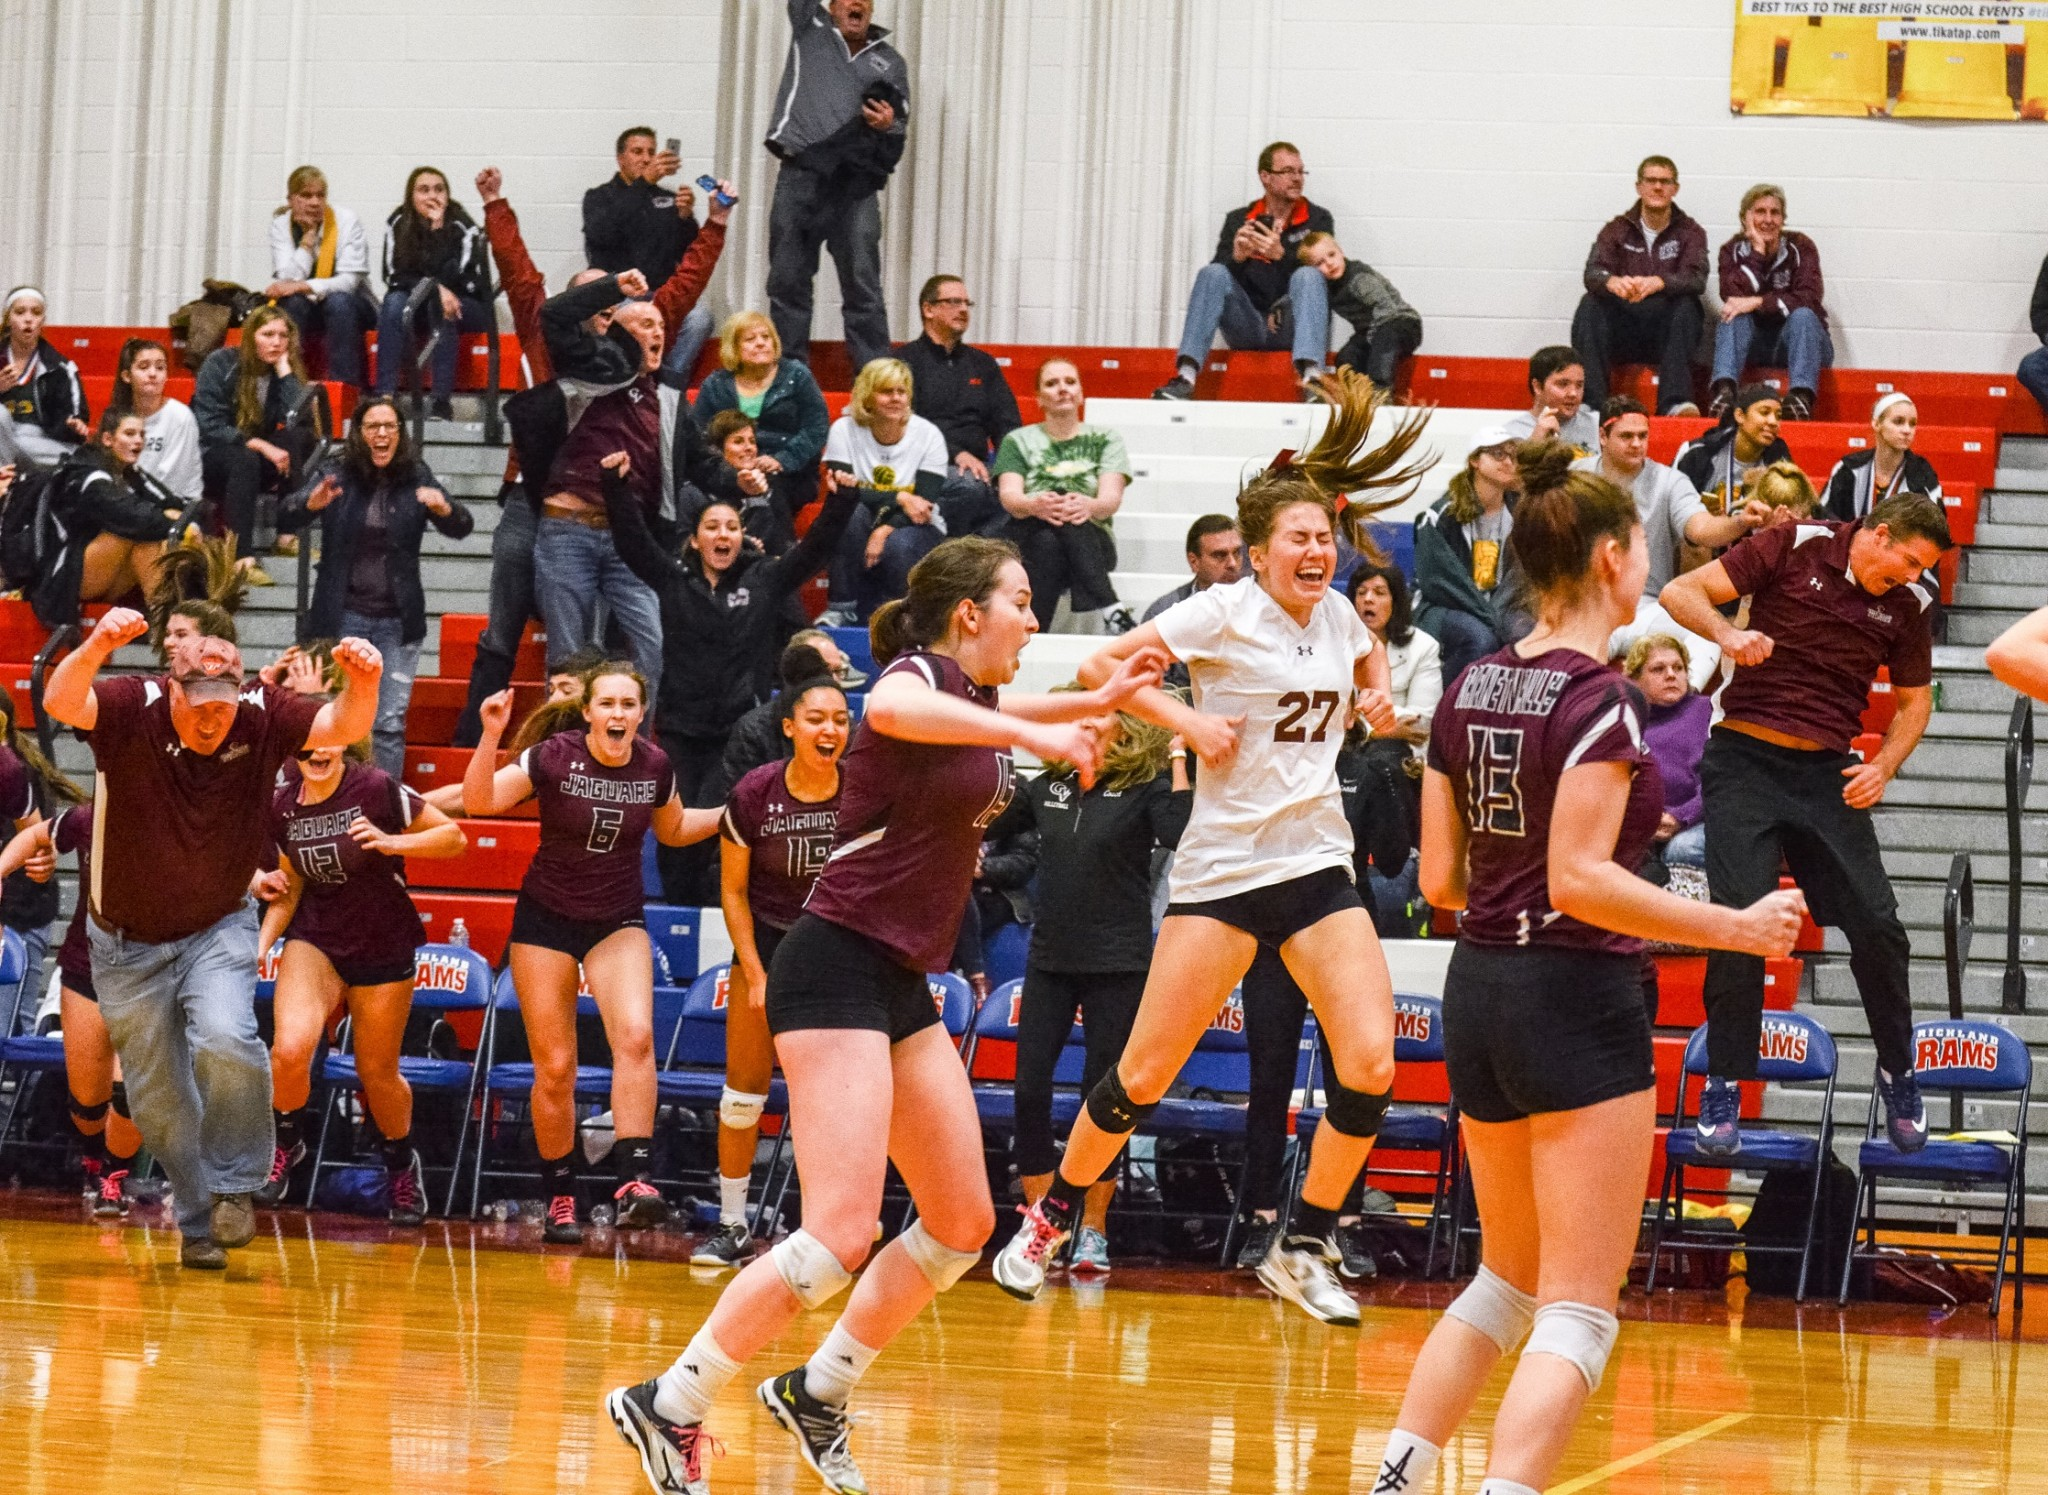 Garnet Valley players Meagan Scott (15), Lizzie Herestofa (27) and Sydney Portale (15) celebrate after the final point in Garnet Valley's 3-2 win over Parkland in the PIAA Class 4A volleyball final Saturday. (For Digital First Media/Tami Knopsnyder)